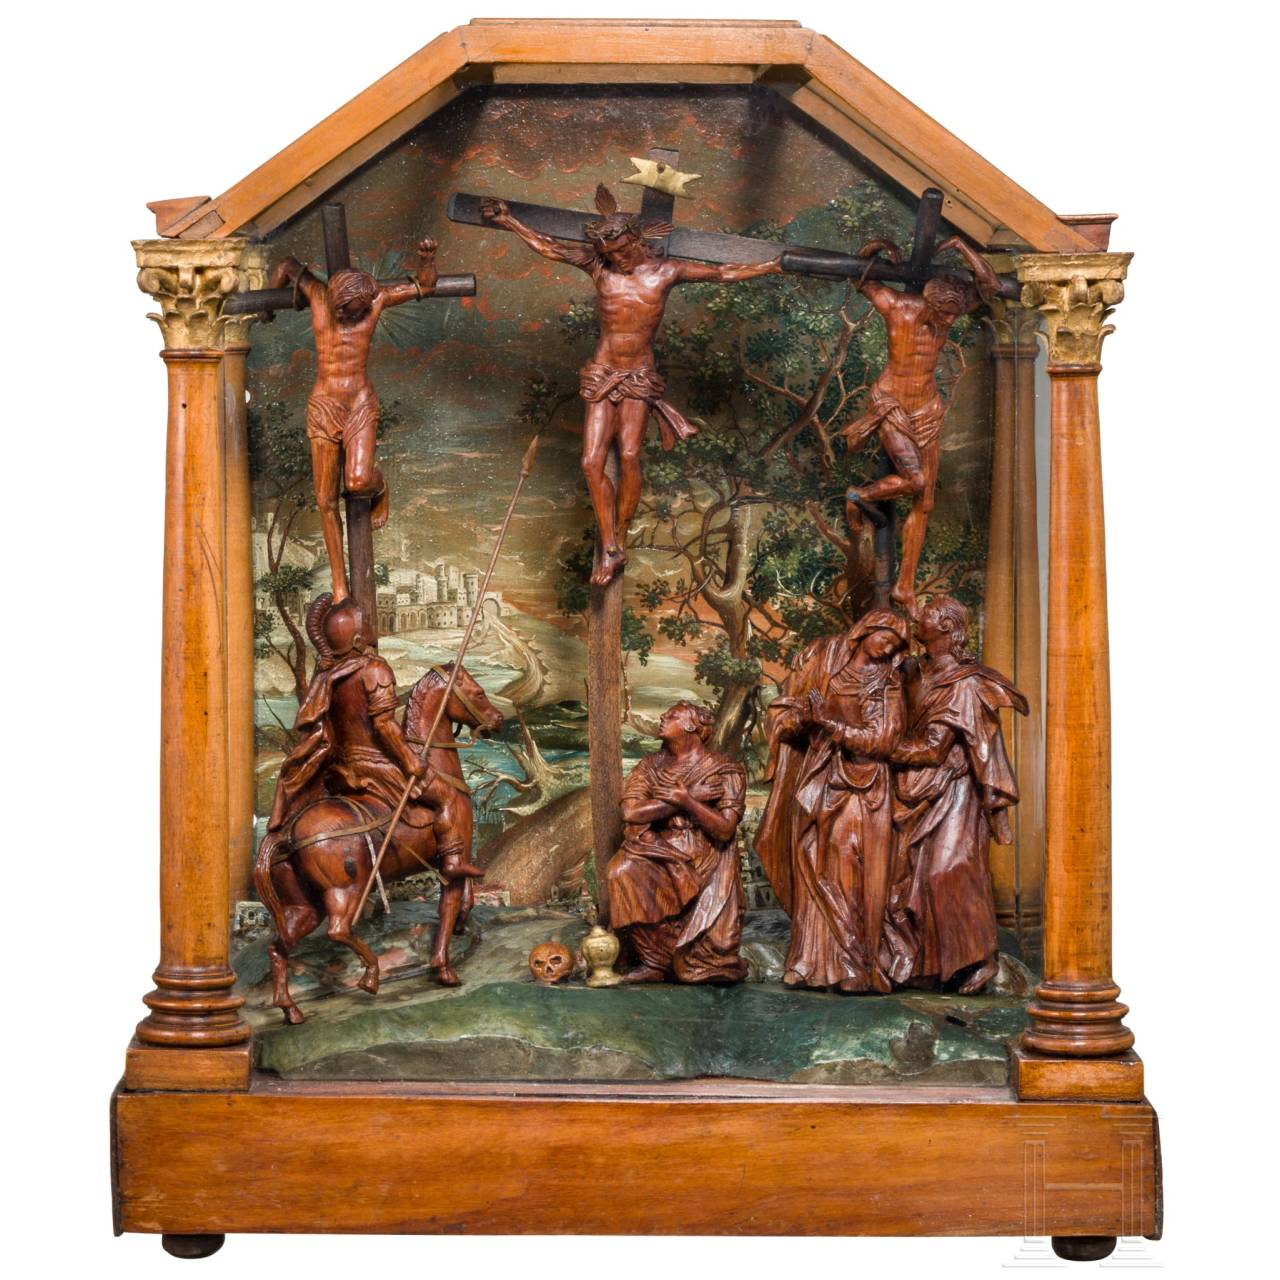 An usual Austrian/Tyrolean (?) carving of Calvary Hill, 17th century